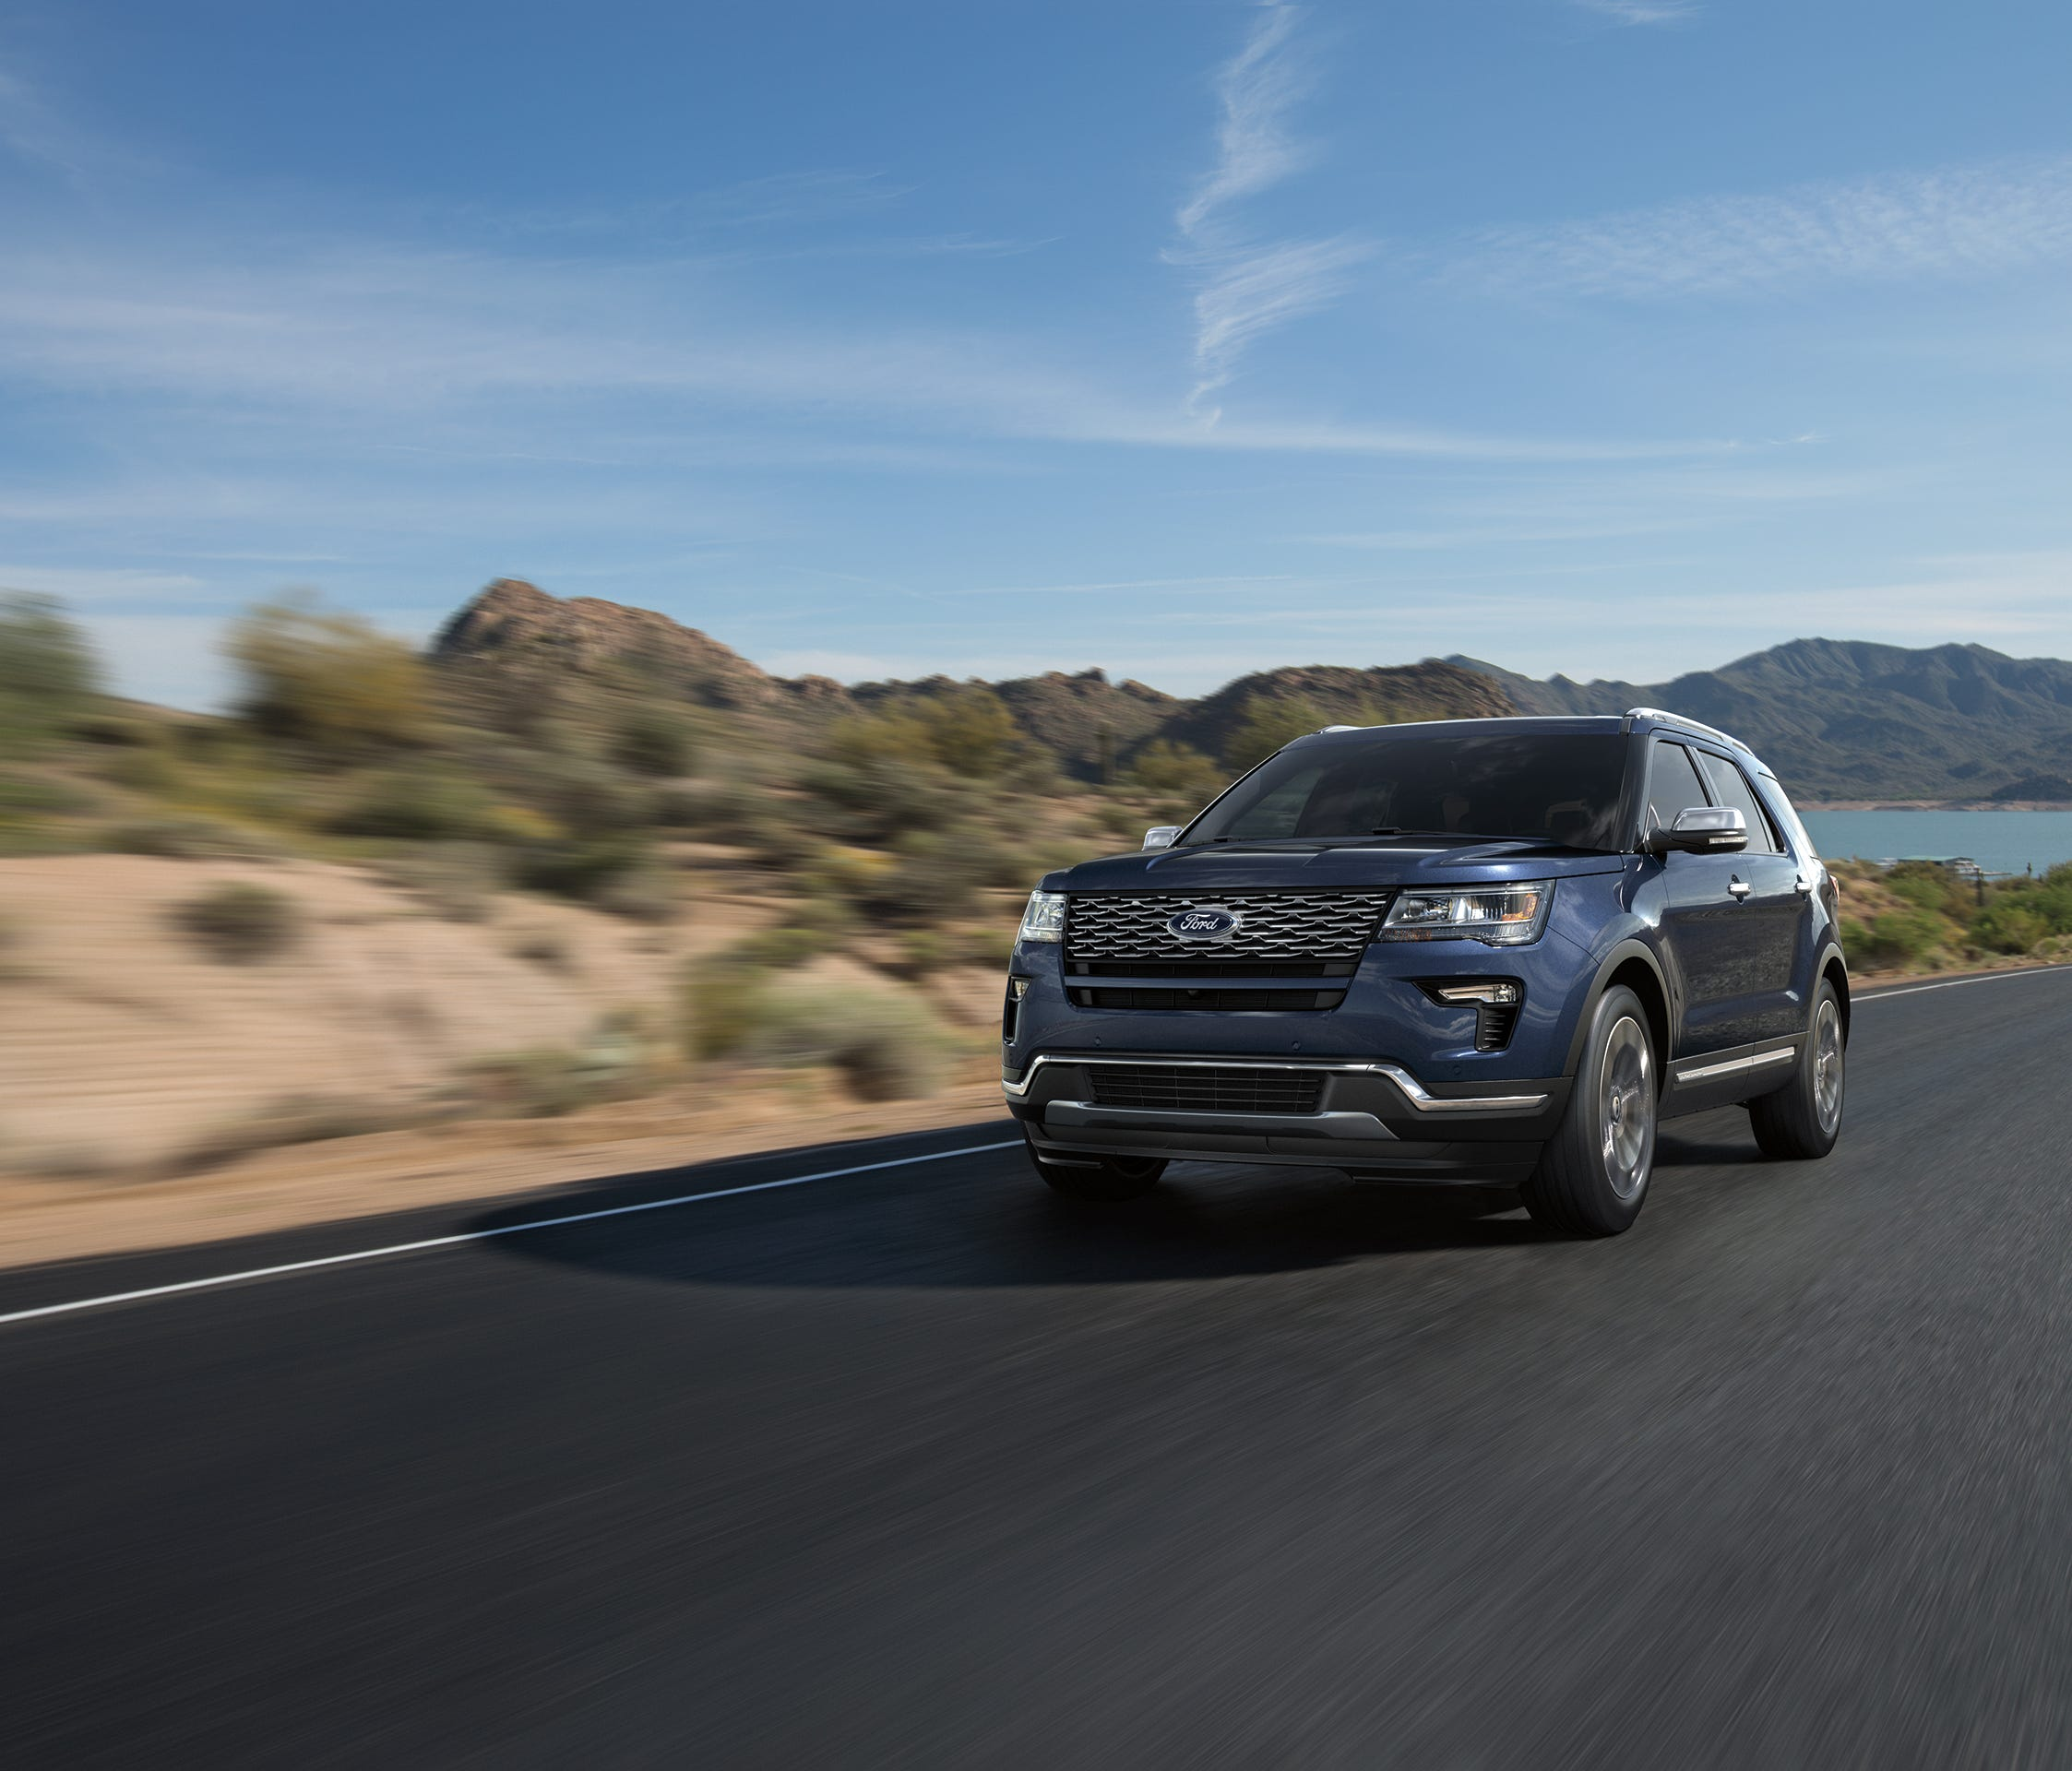 The 2018 Ford Explorer received a poor rating in the latest Insurance Institute for Highway Safety passenger-side crash test results.